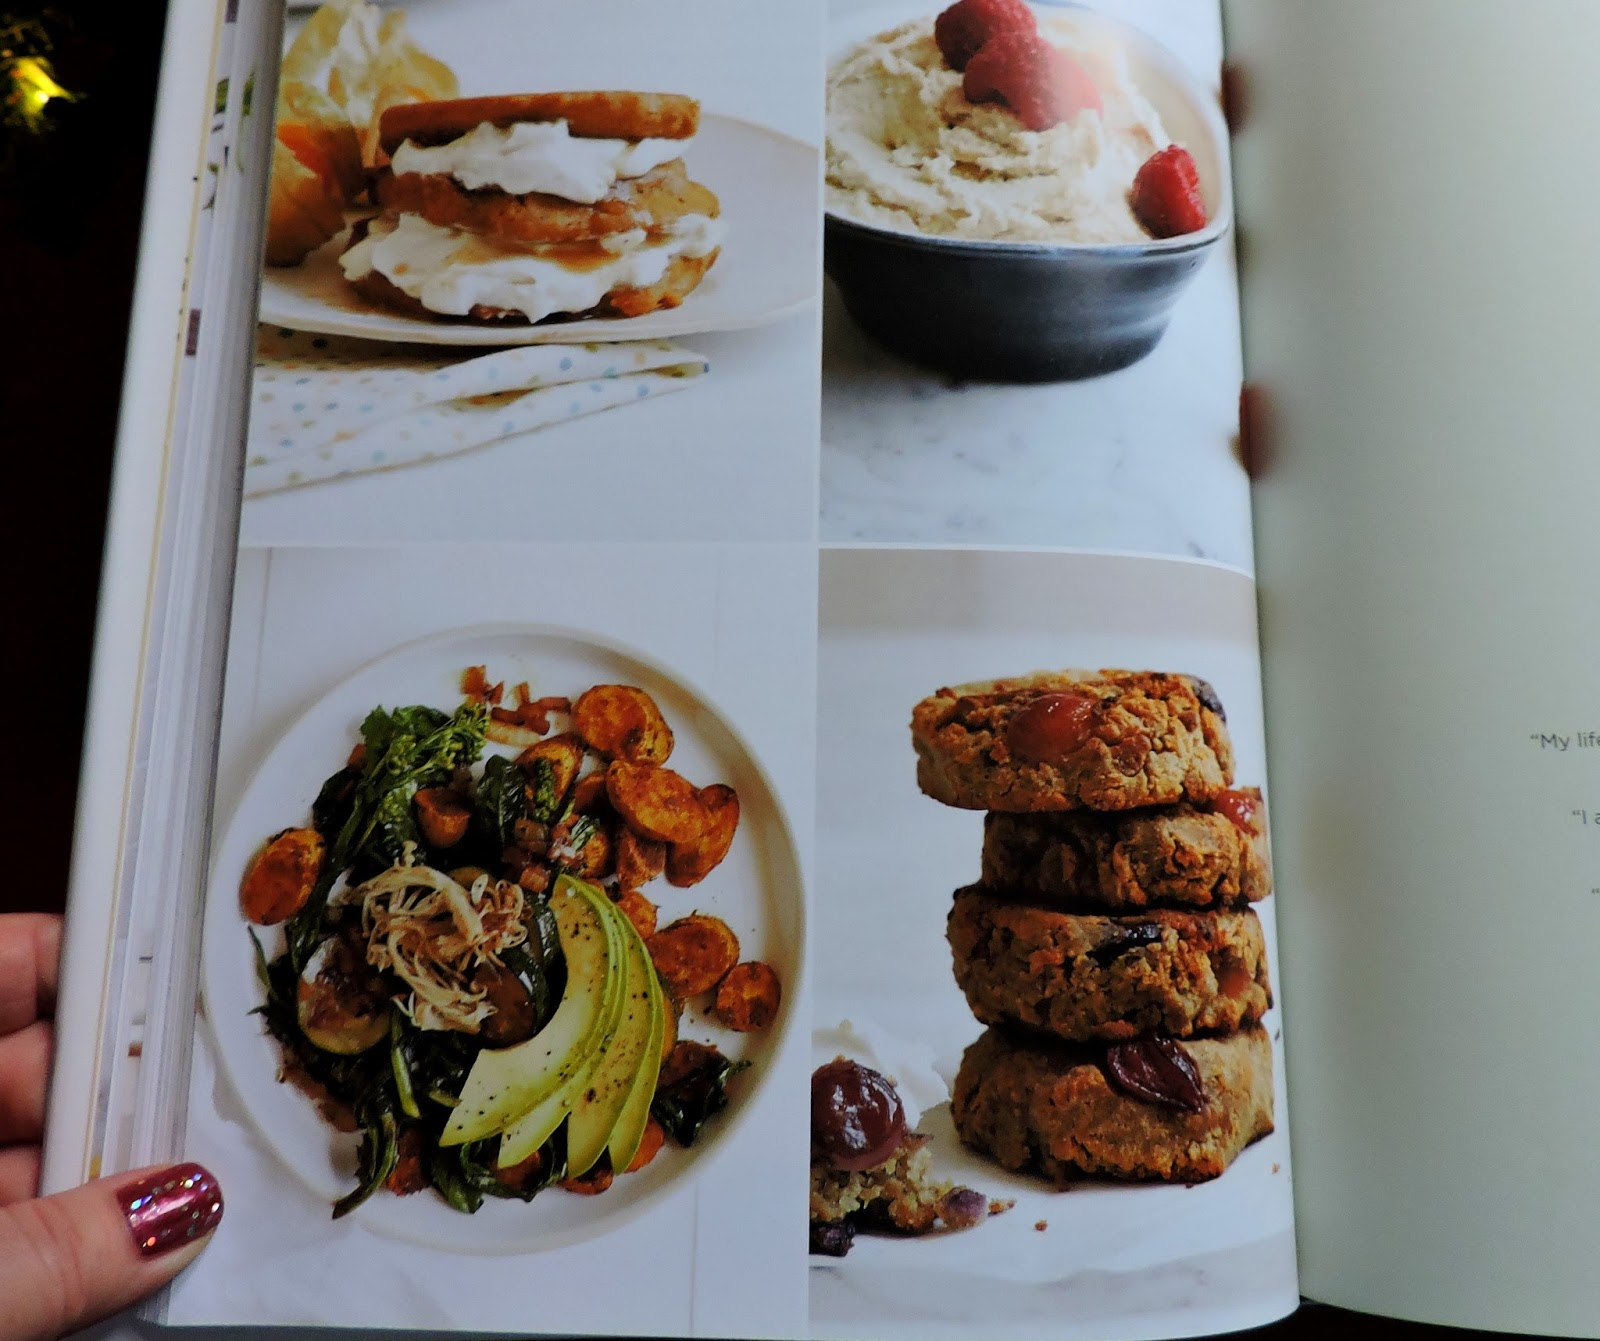 The english kitchen eat with intention recipes and meditation for reading this book is really has helping me to rethink how and what i eat it is not only filled with recipes that make my mouth water but so much more than forumfinder